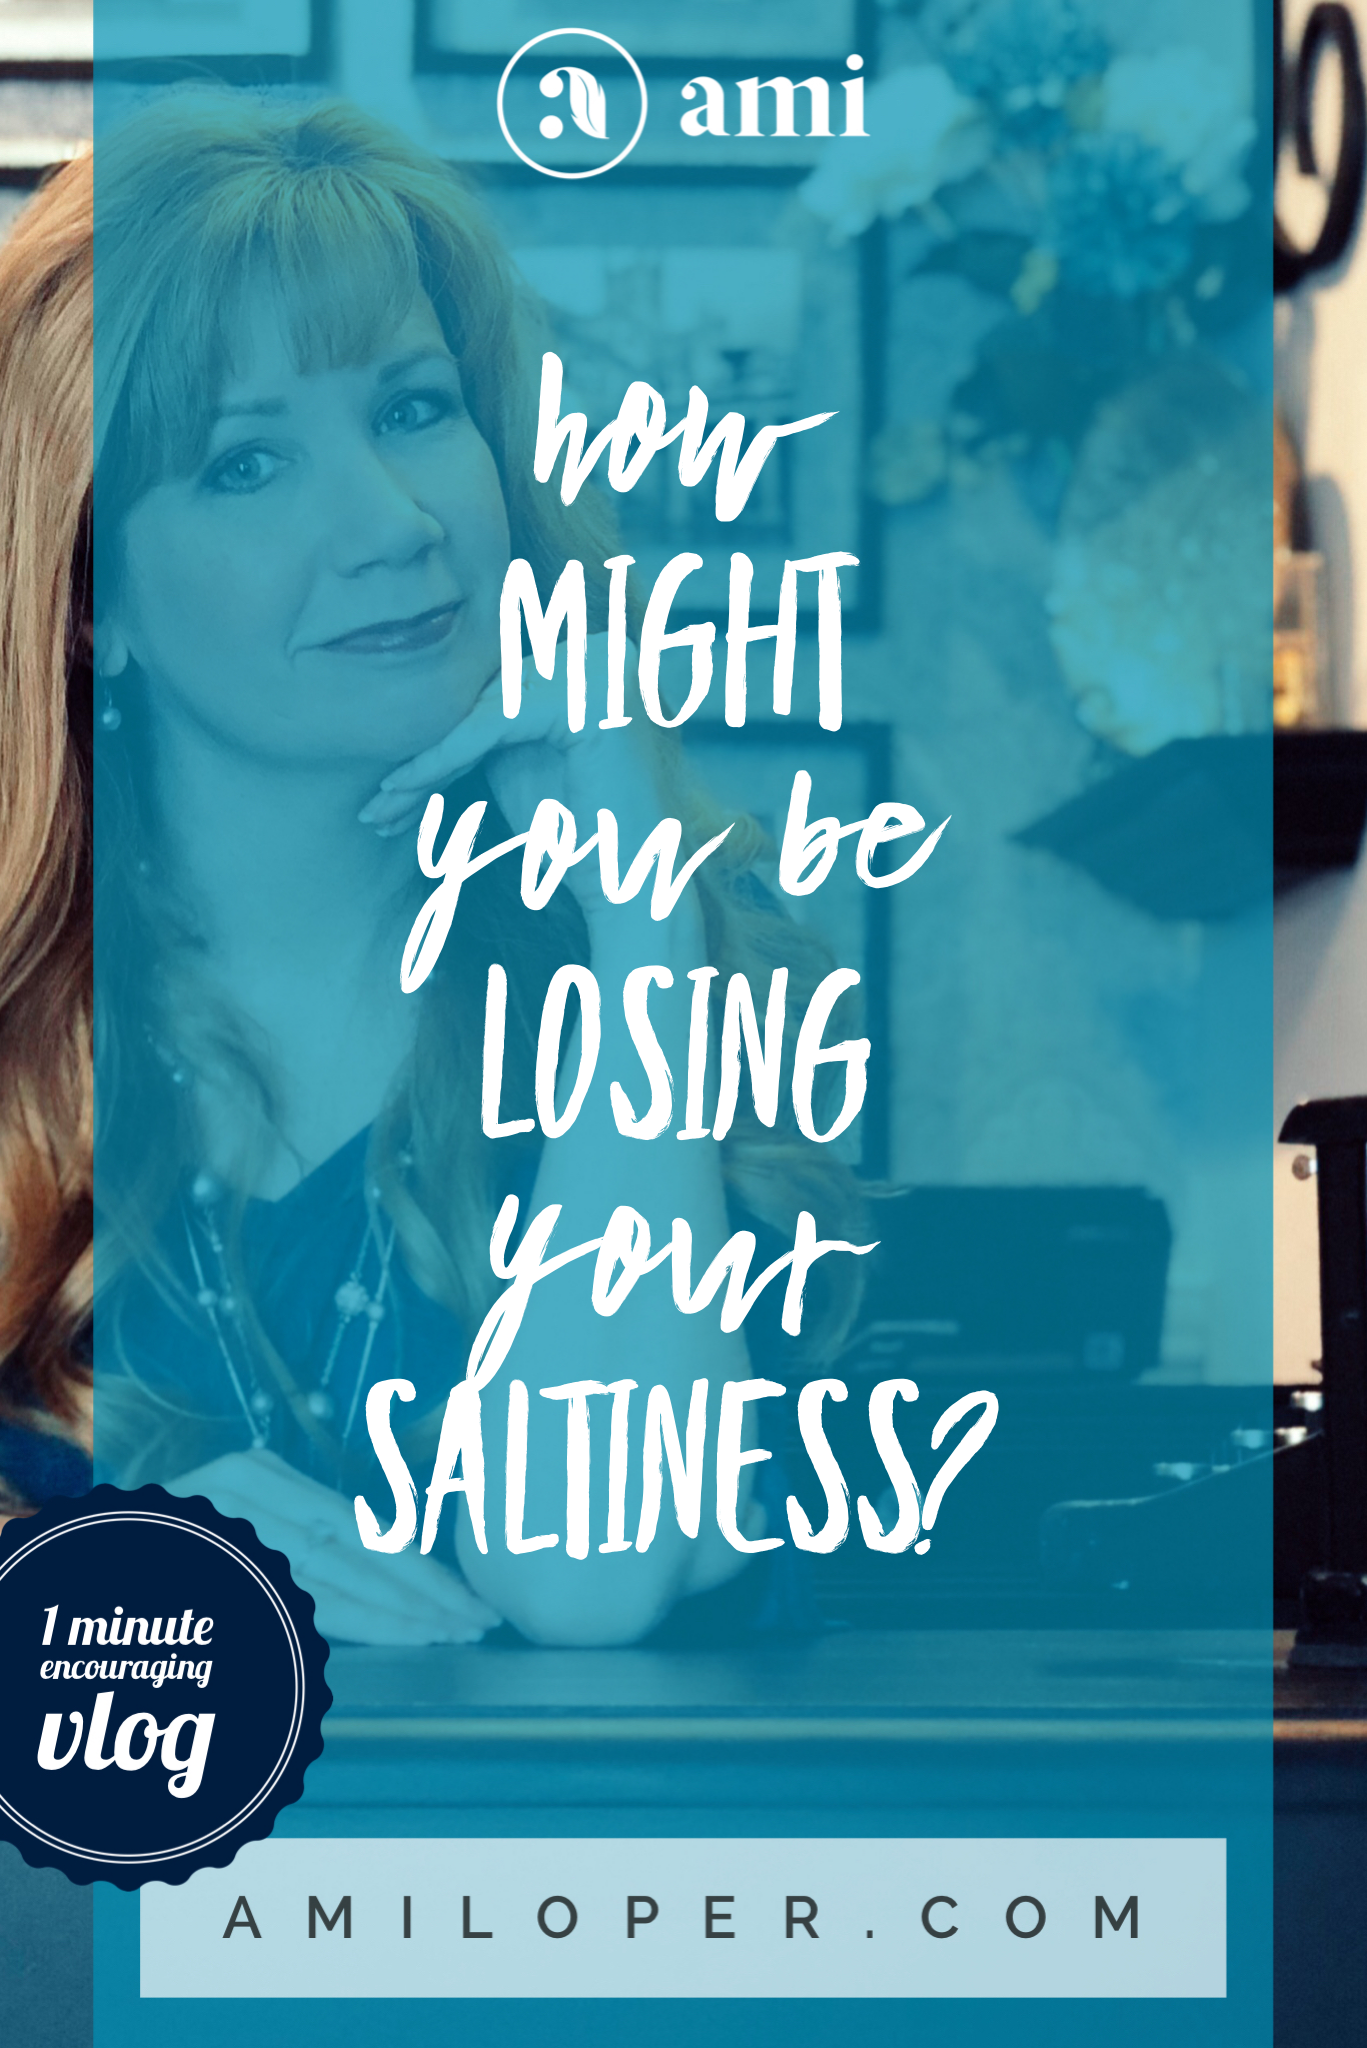 When Jesus says we need to be the salt of the earth and not lose our saltiness, what is He telling us? How can we lose saltiness? #Vlog #StudyingTheBible #SaltOfTheEarth